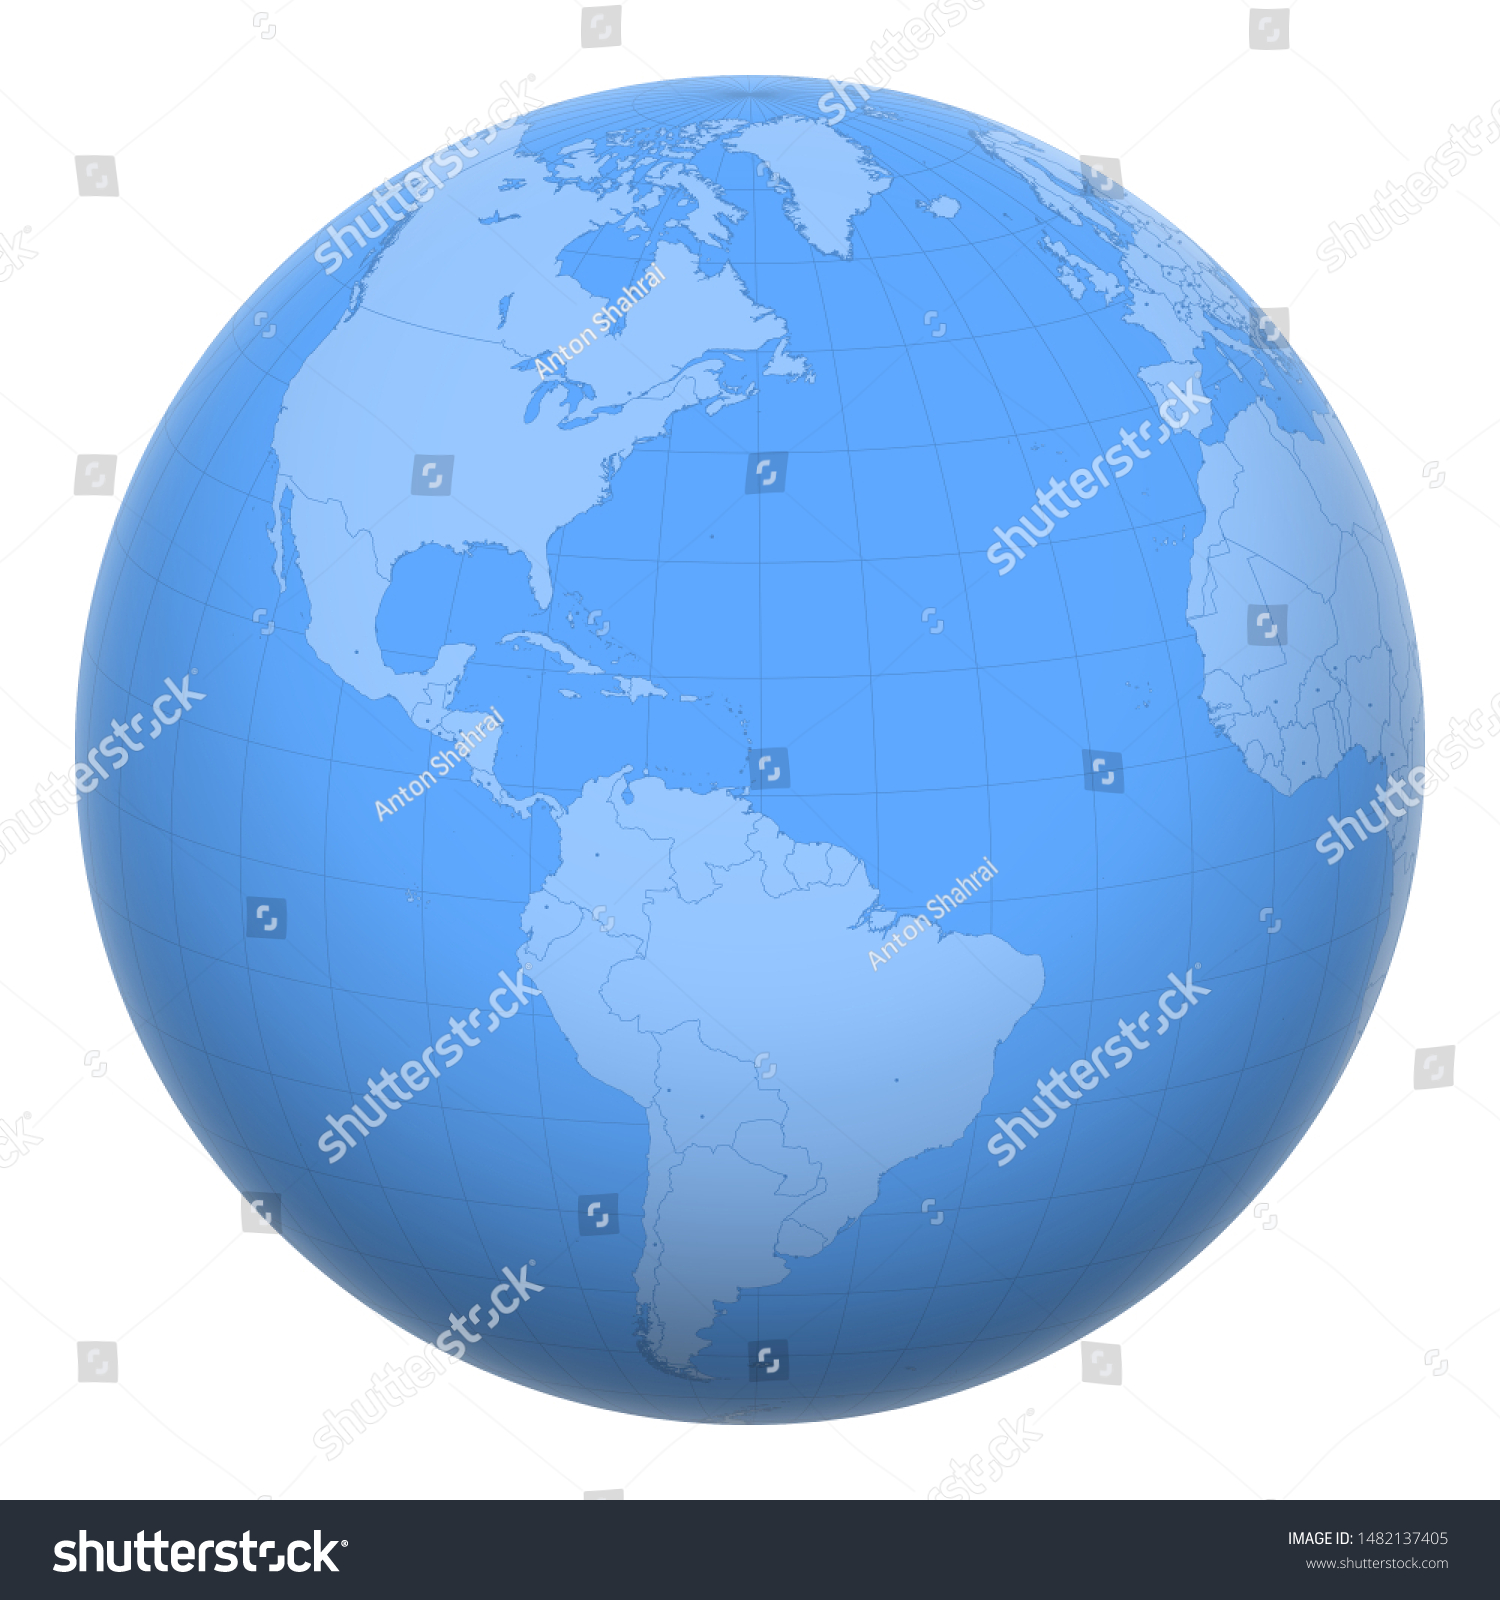 Image of: Saint Lucia On Globe Earth Centered Stock Vector Royalty Free 1482137405